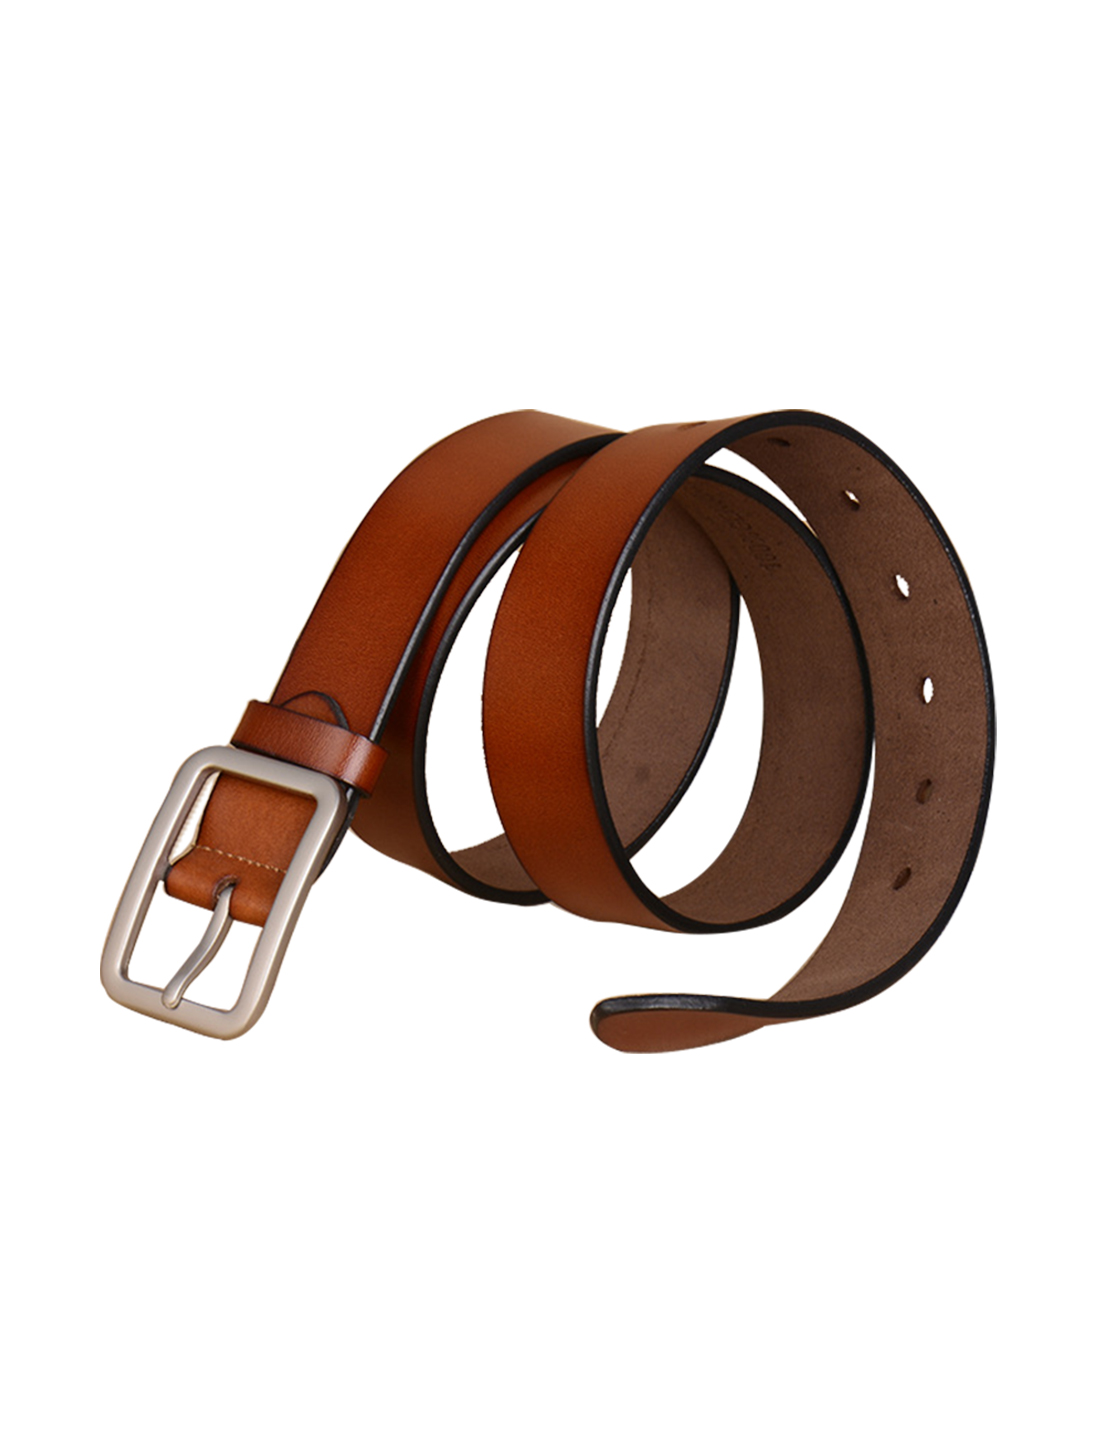 Mens Casual Single Pin Buckle Dress Leather Belt 33mm Width 1 1/4 Brown 125cm